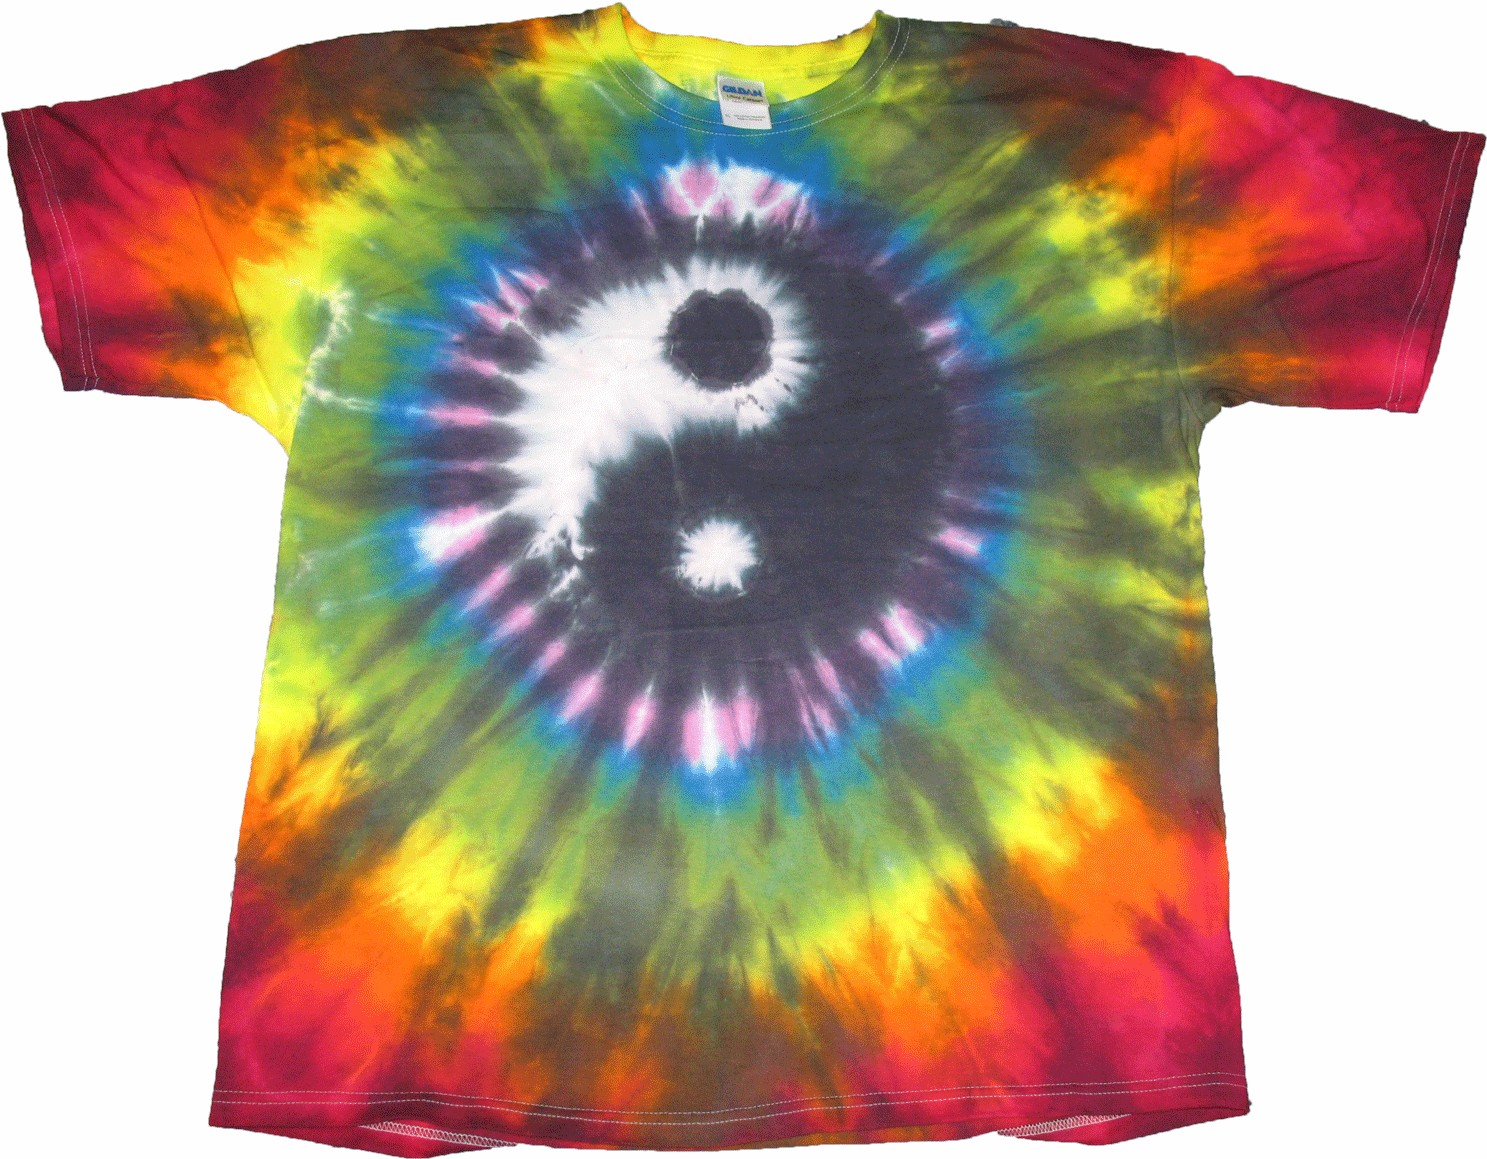 tie dye patterns designs and how to do them